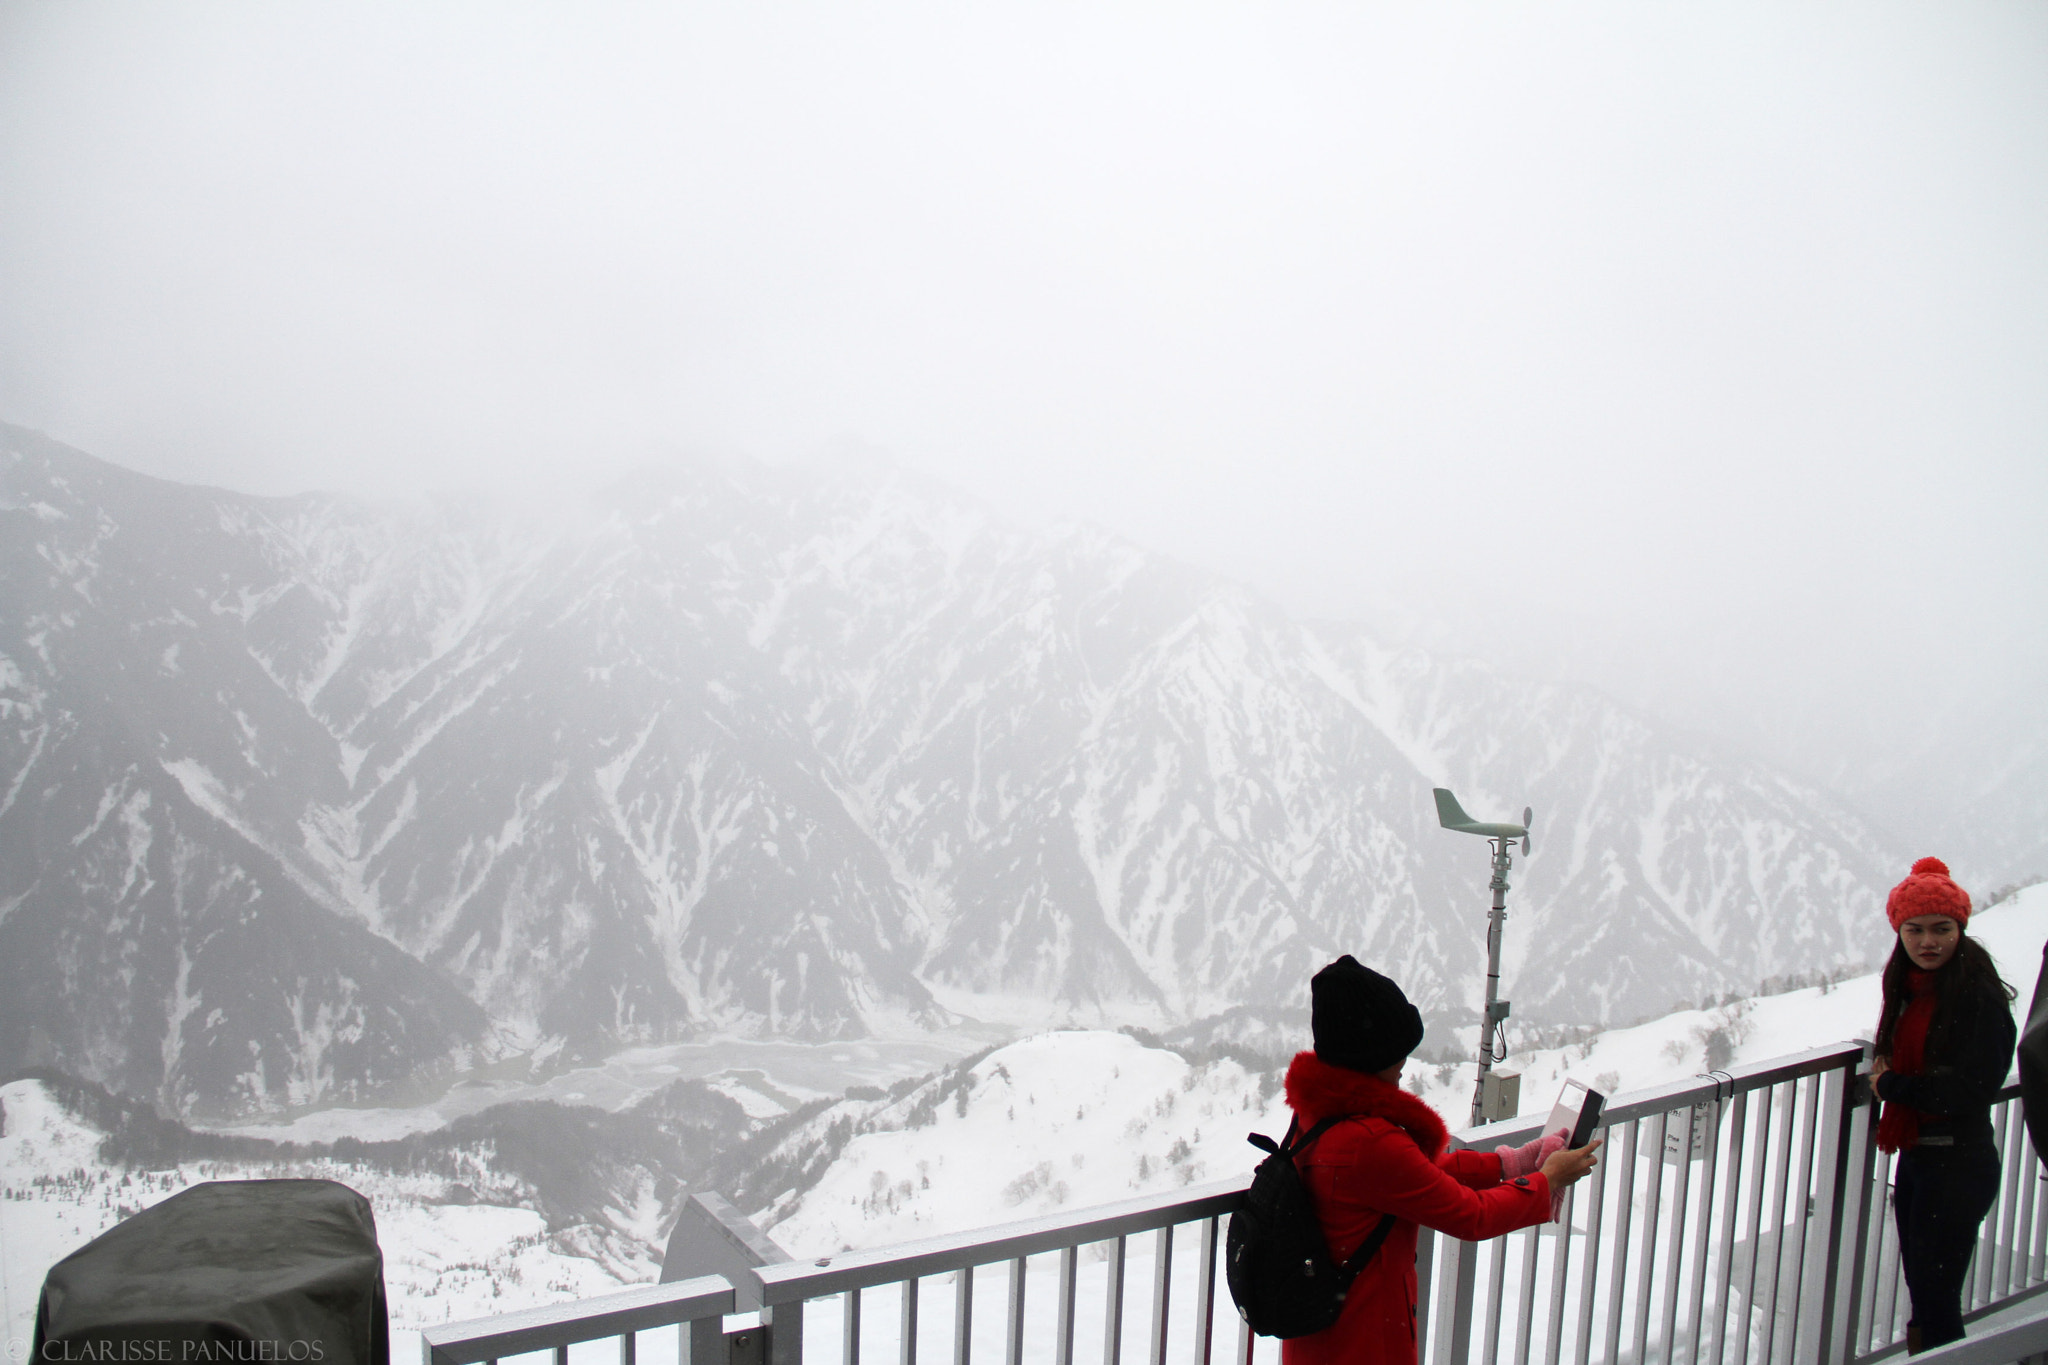 75e186709eb35e19528f41fdbea7c153 - Japan Travel Blog April 2015: Tateyama Kurobe Alpine Route